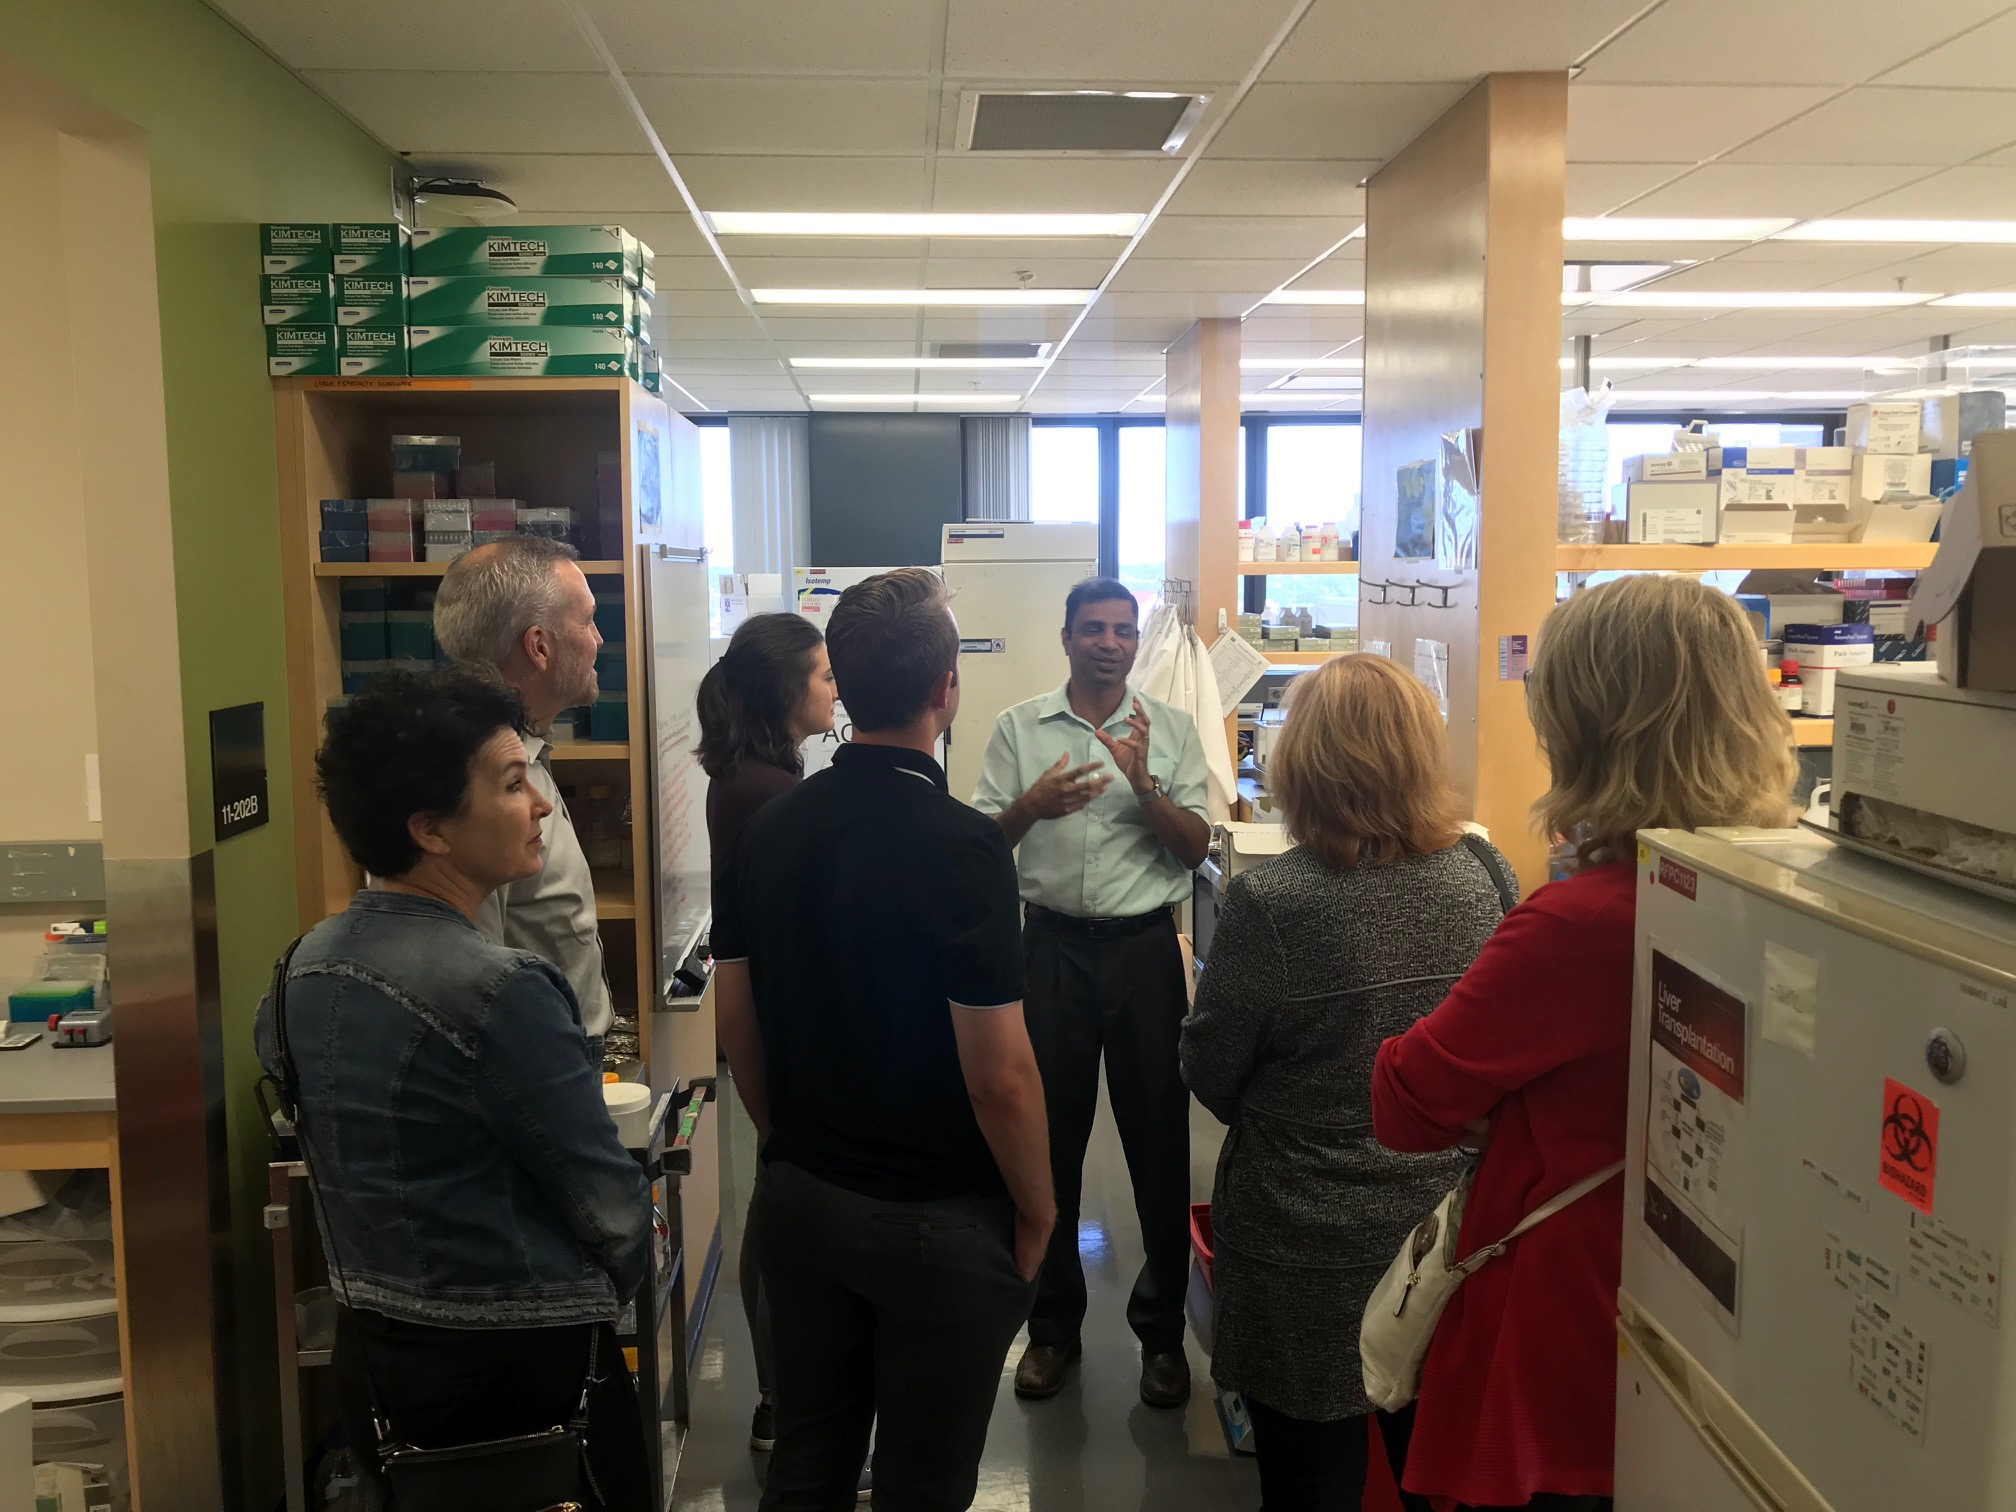 Dr. Subree Subramanian explained how the lab operates and introduced his talented staff.